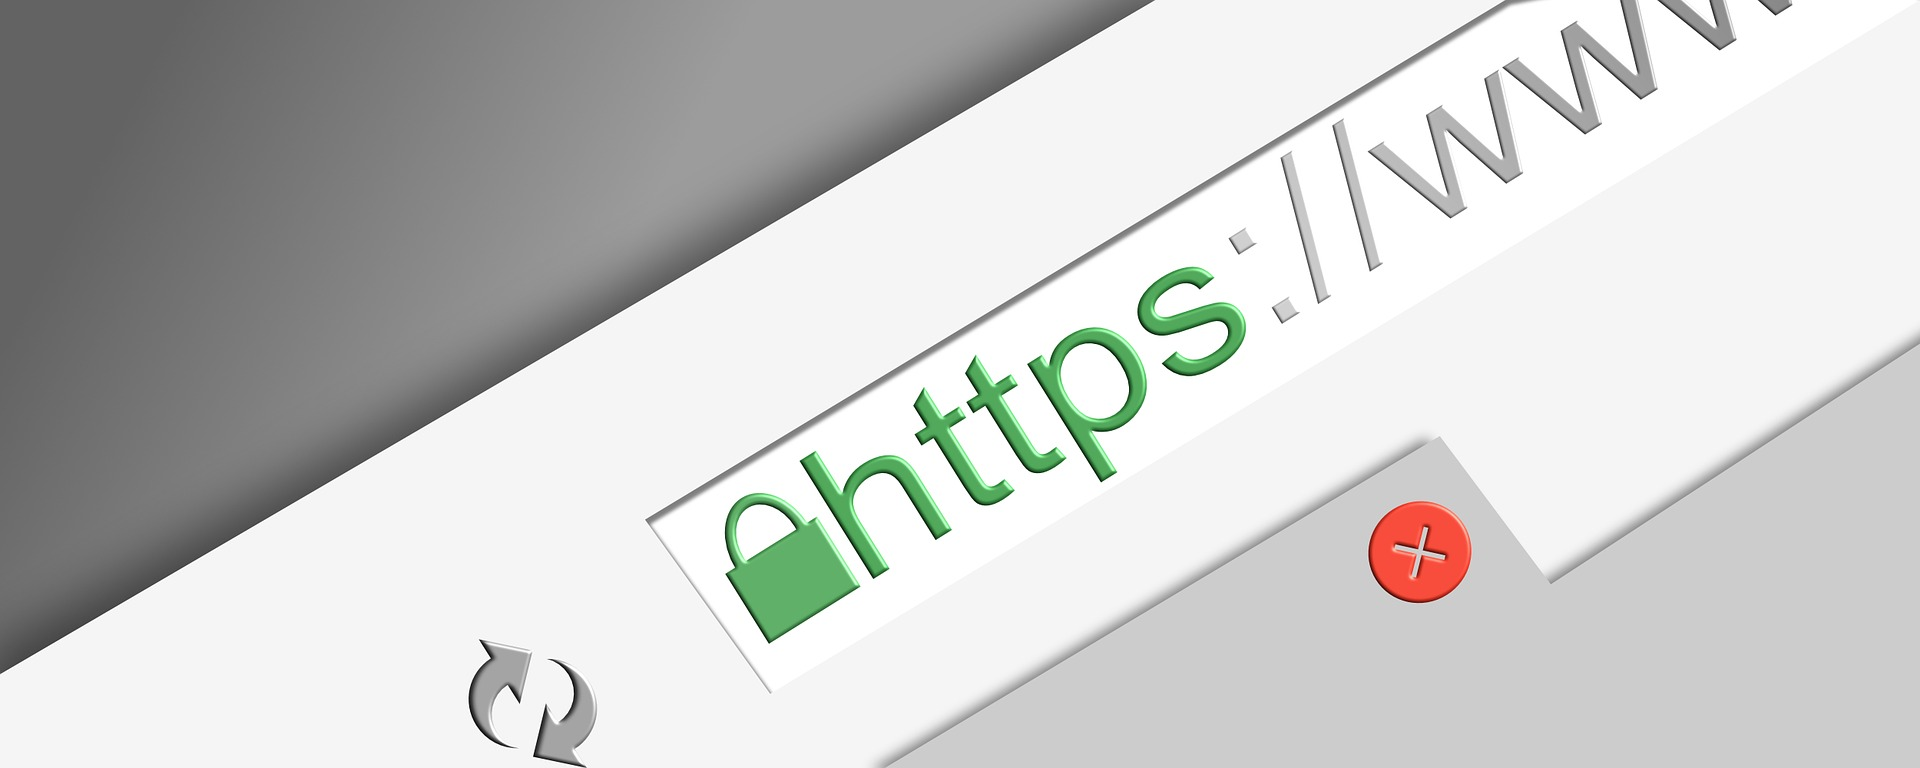 what-is-ssl-and-https